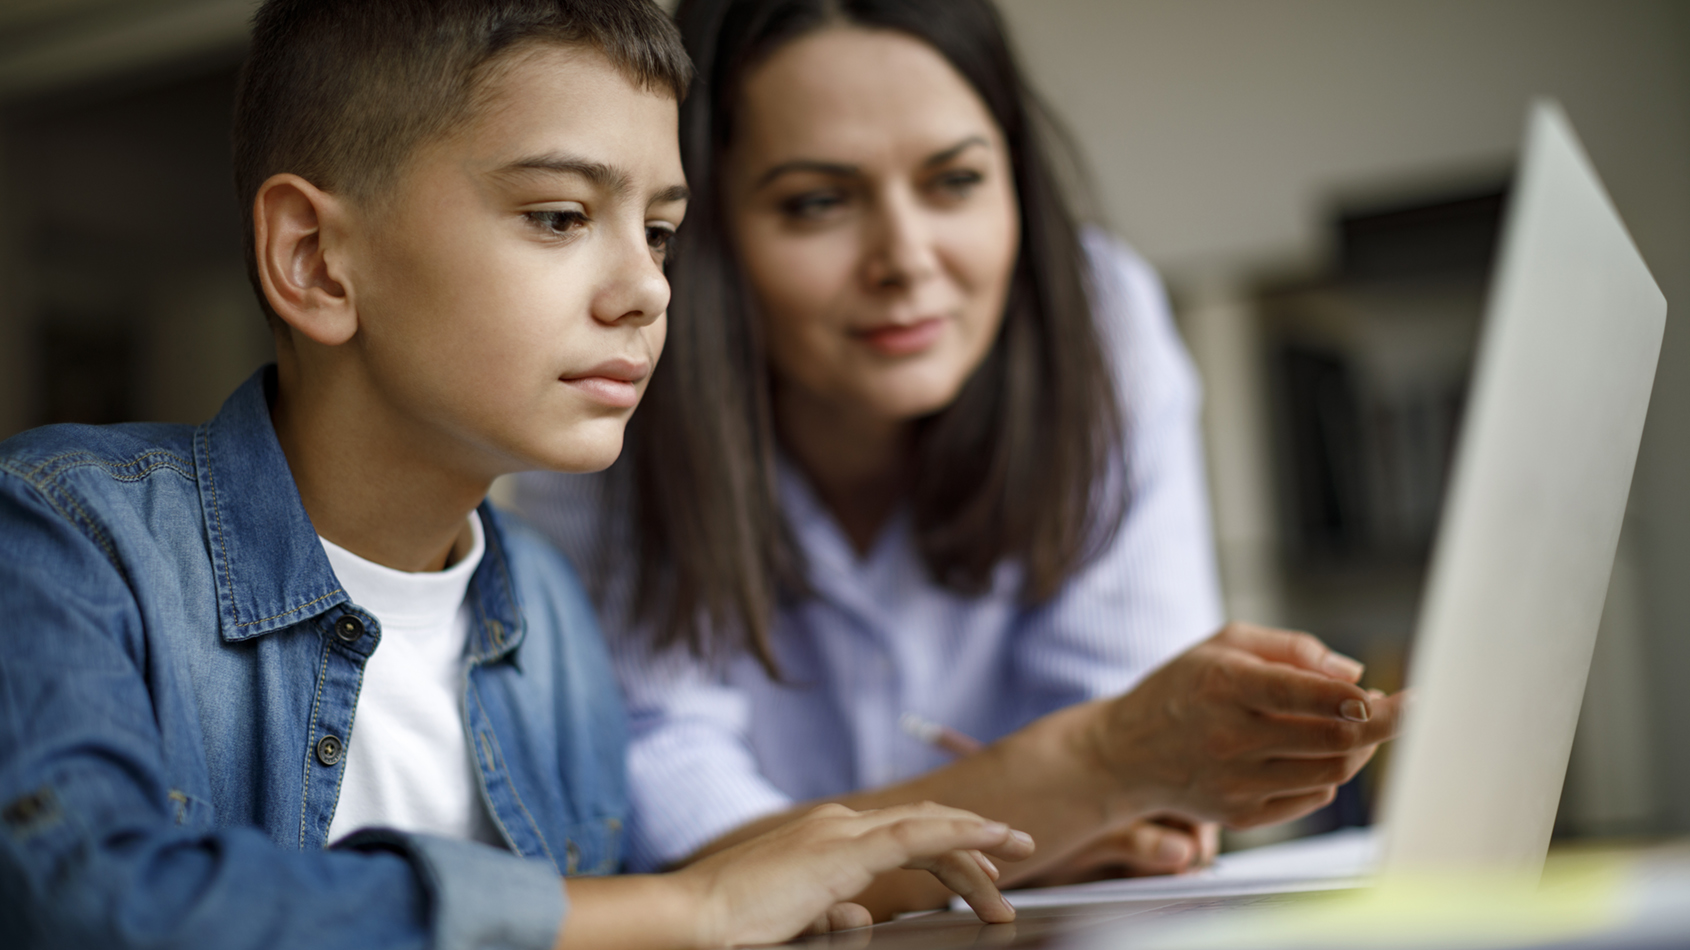 Integrated parental engagement solutions